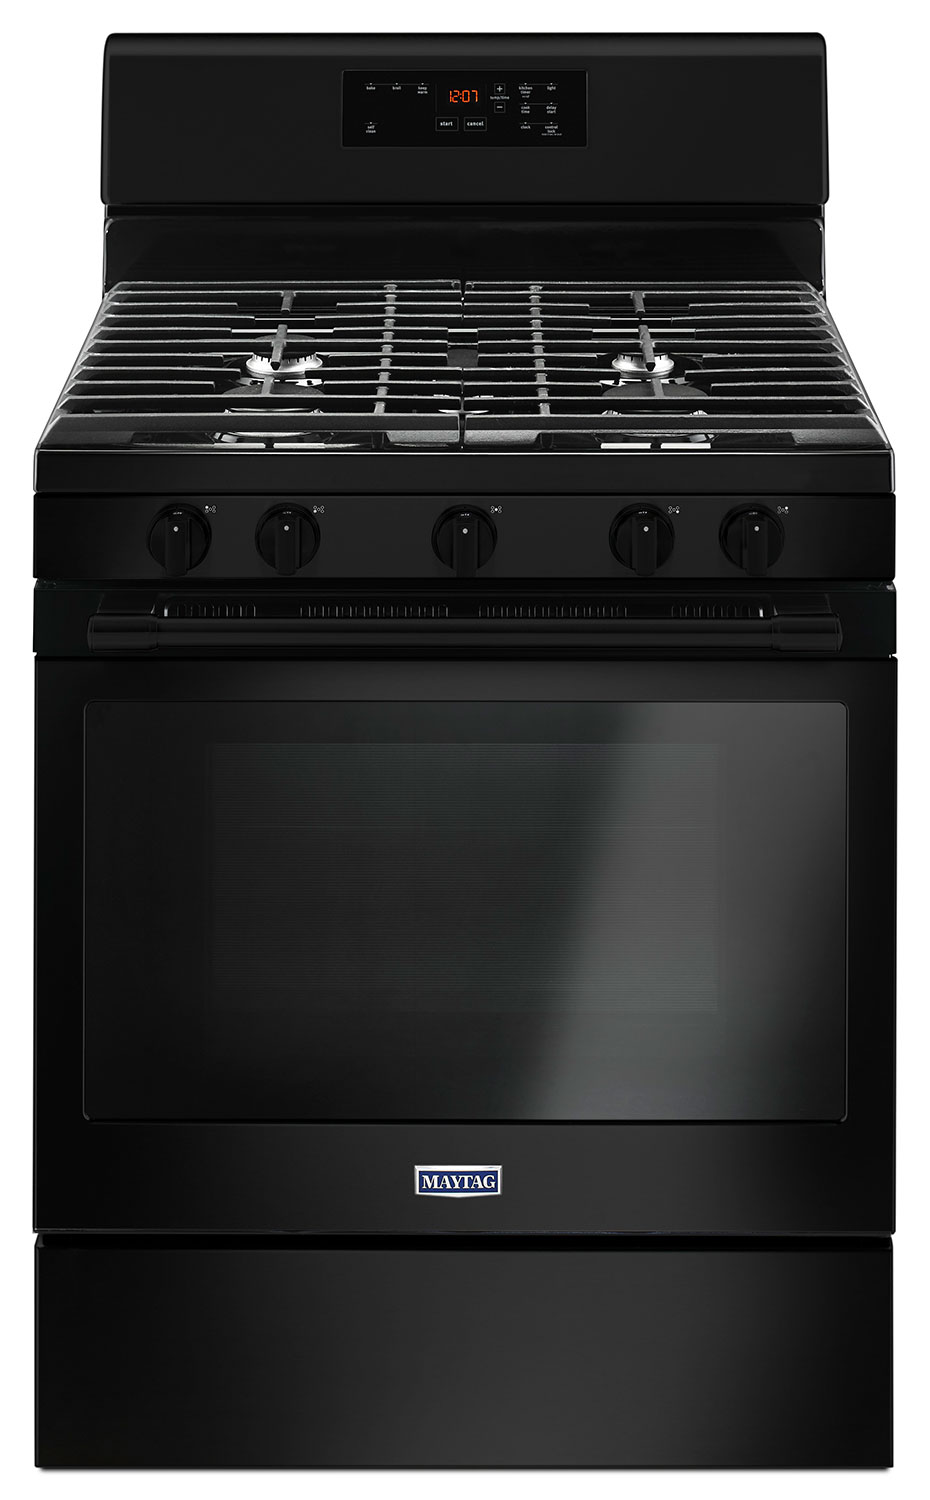 Cooking Products - Maytag 5.0 Cu. Ft. Freestanding Gas Range with Oval Burner – MGR6600FB